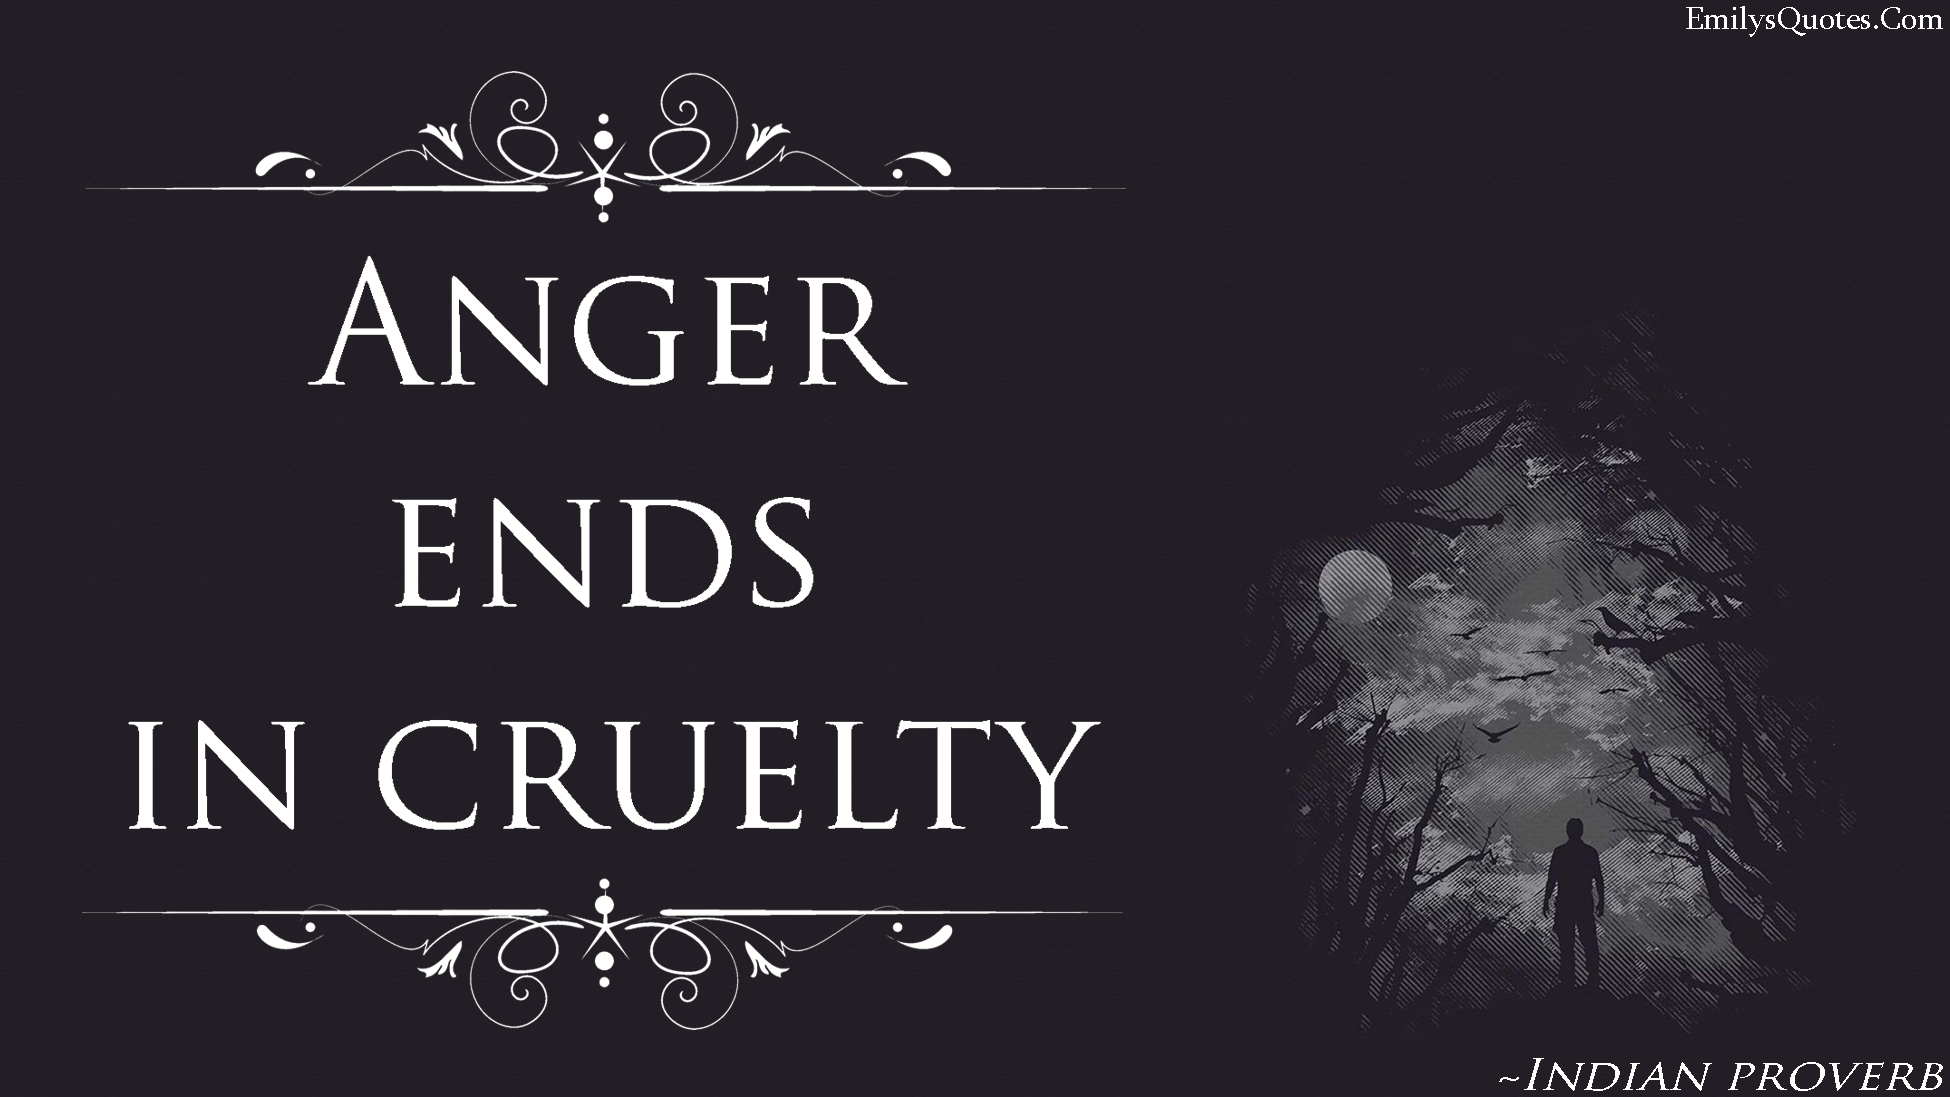 Popular Inspirational Quotes Anger Ends In Cruelty  Popular Inspirational Quotes At Emilysquotes